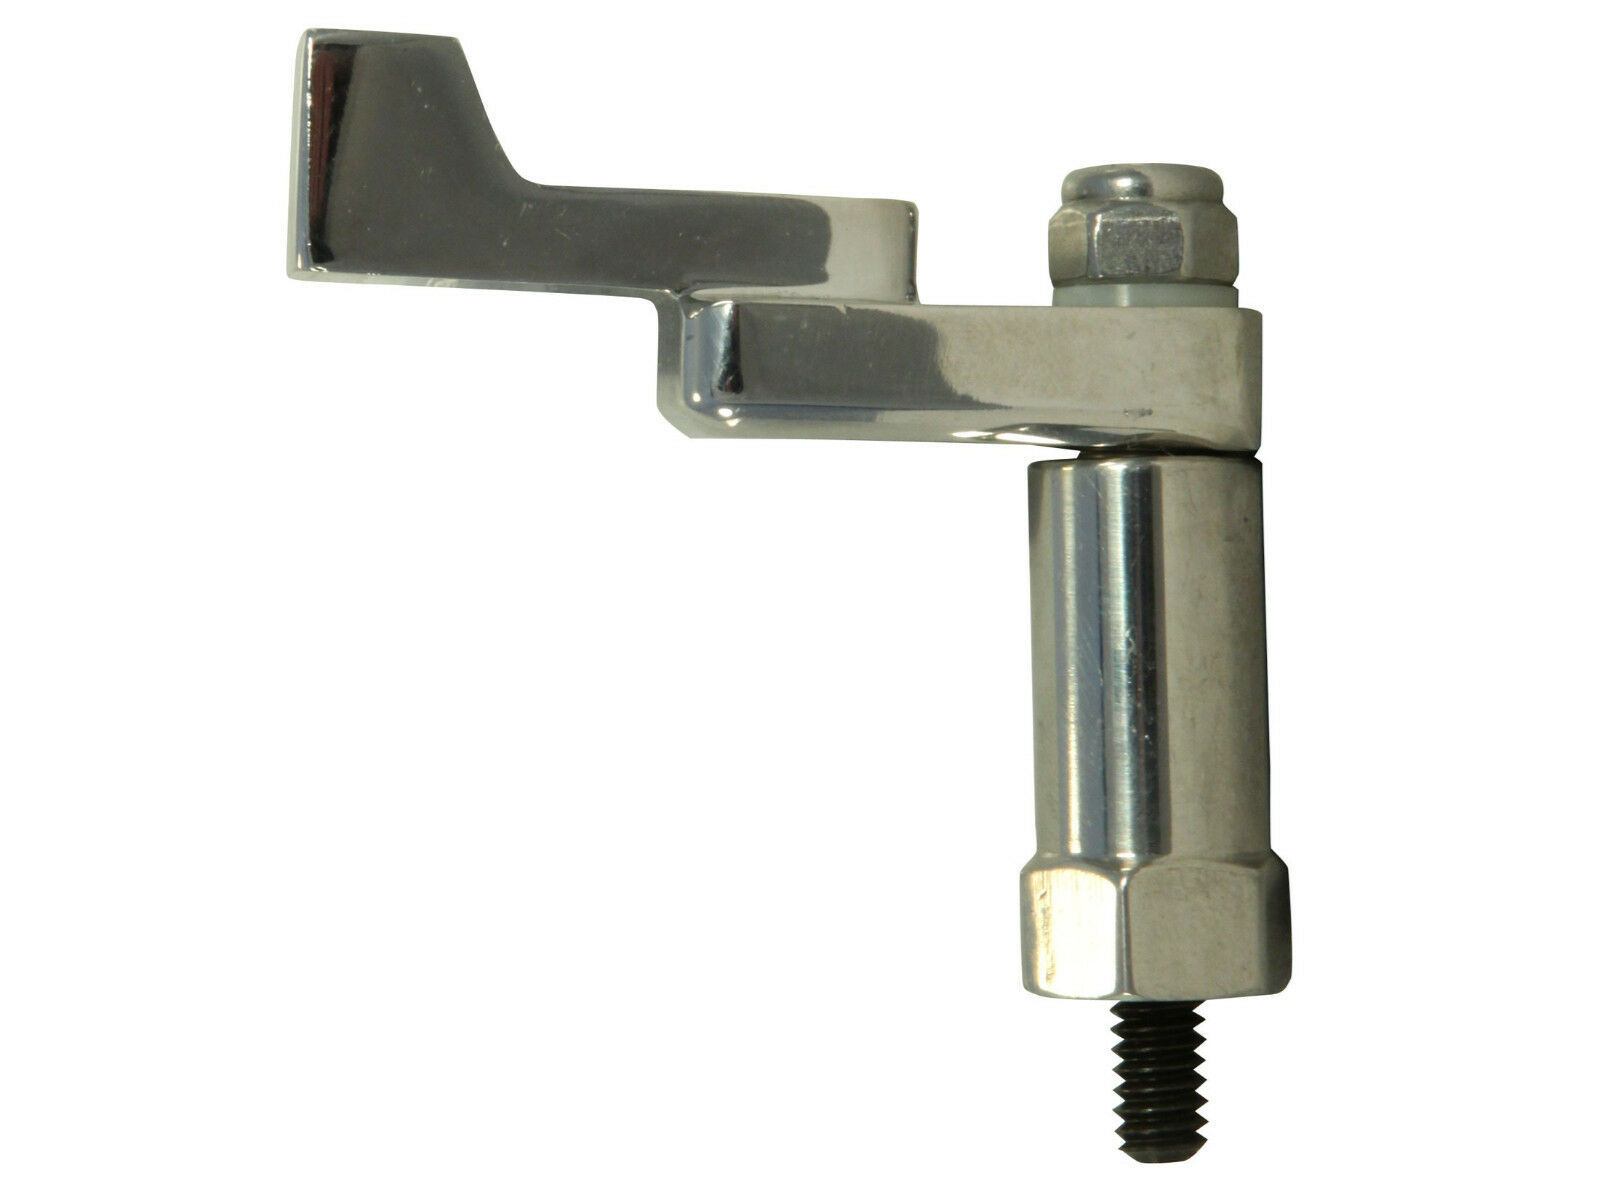 L. E. Wilson Trimmer Stand and Case Holder Clamp Clamp Holder CT-CLST  Free Shipping a50491